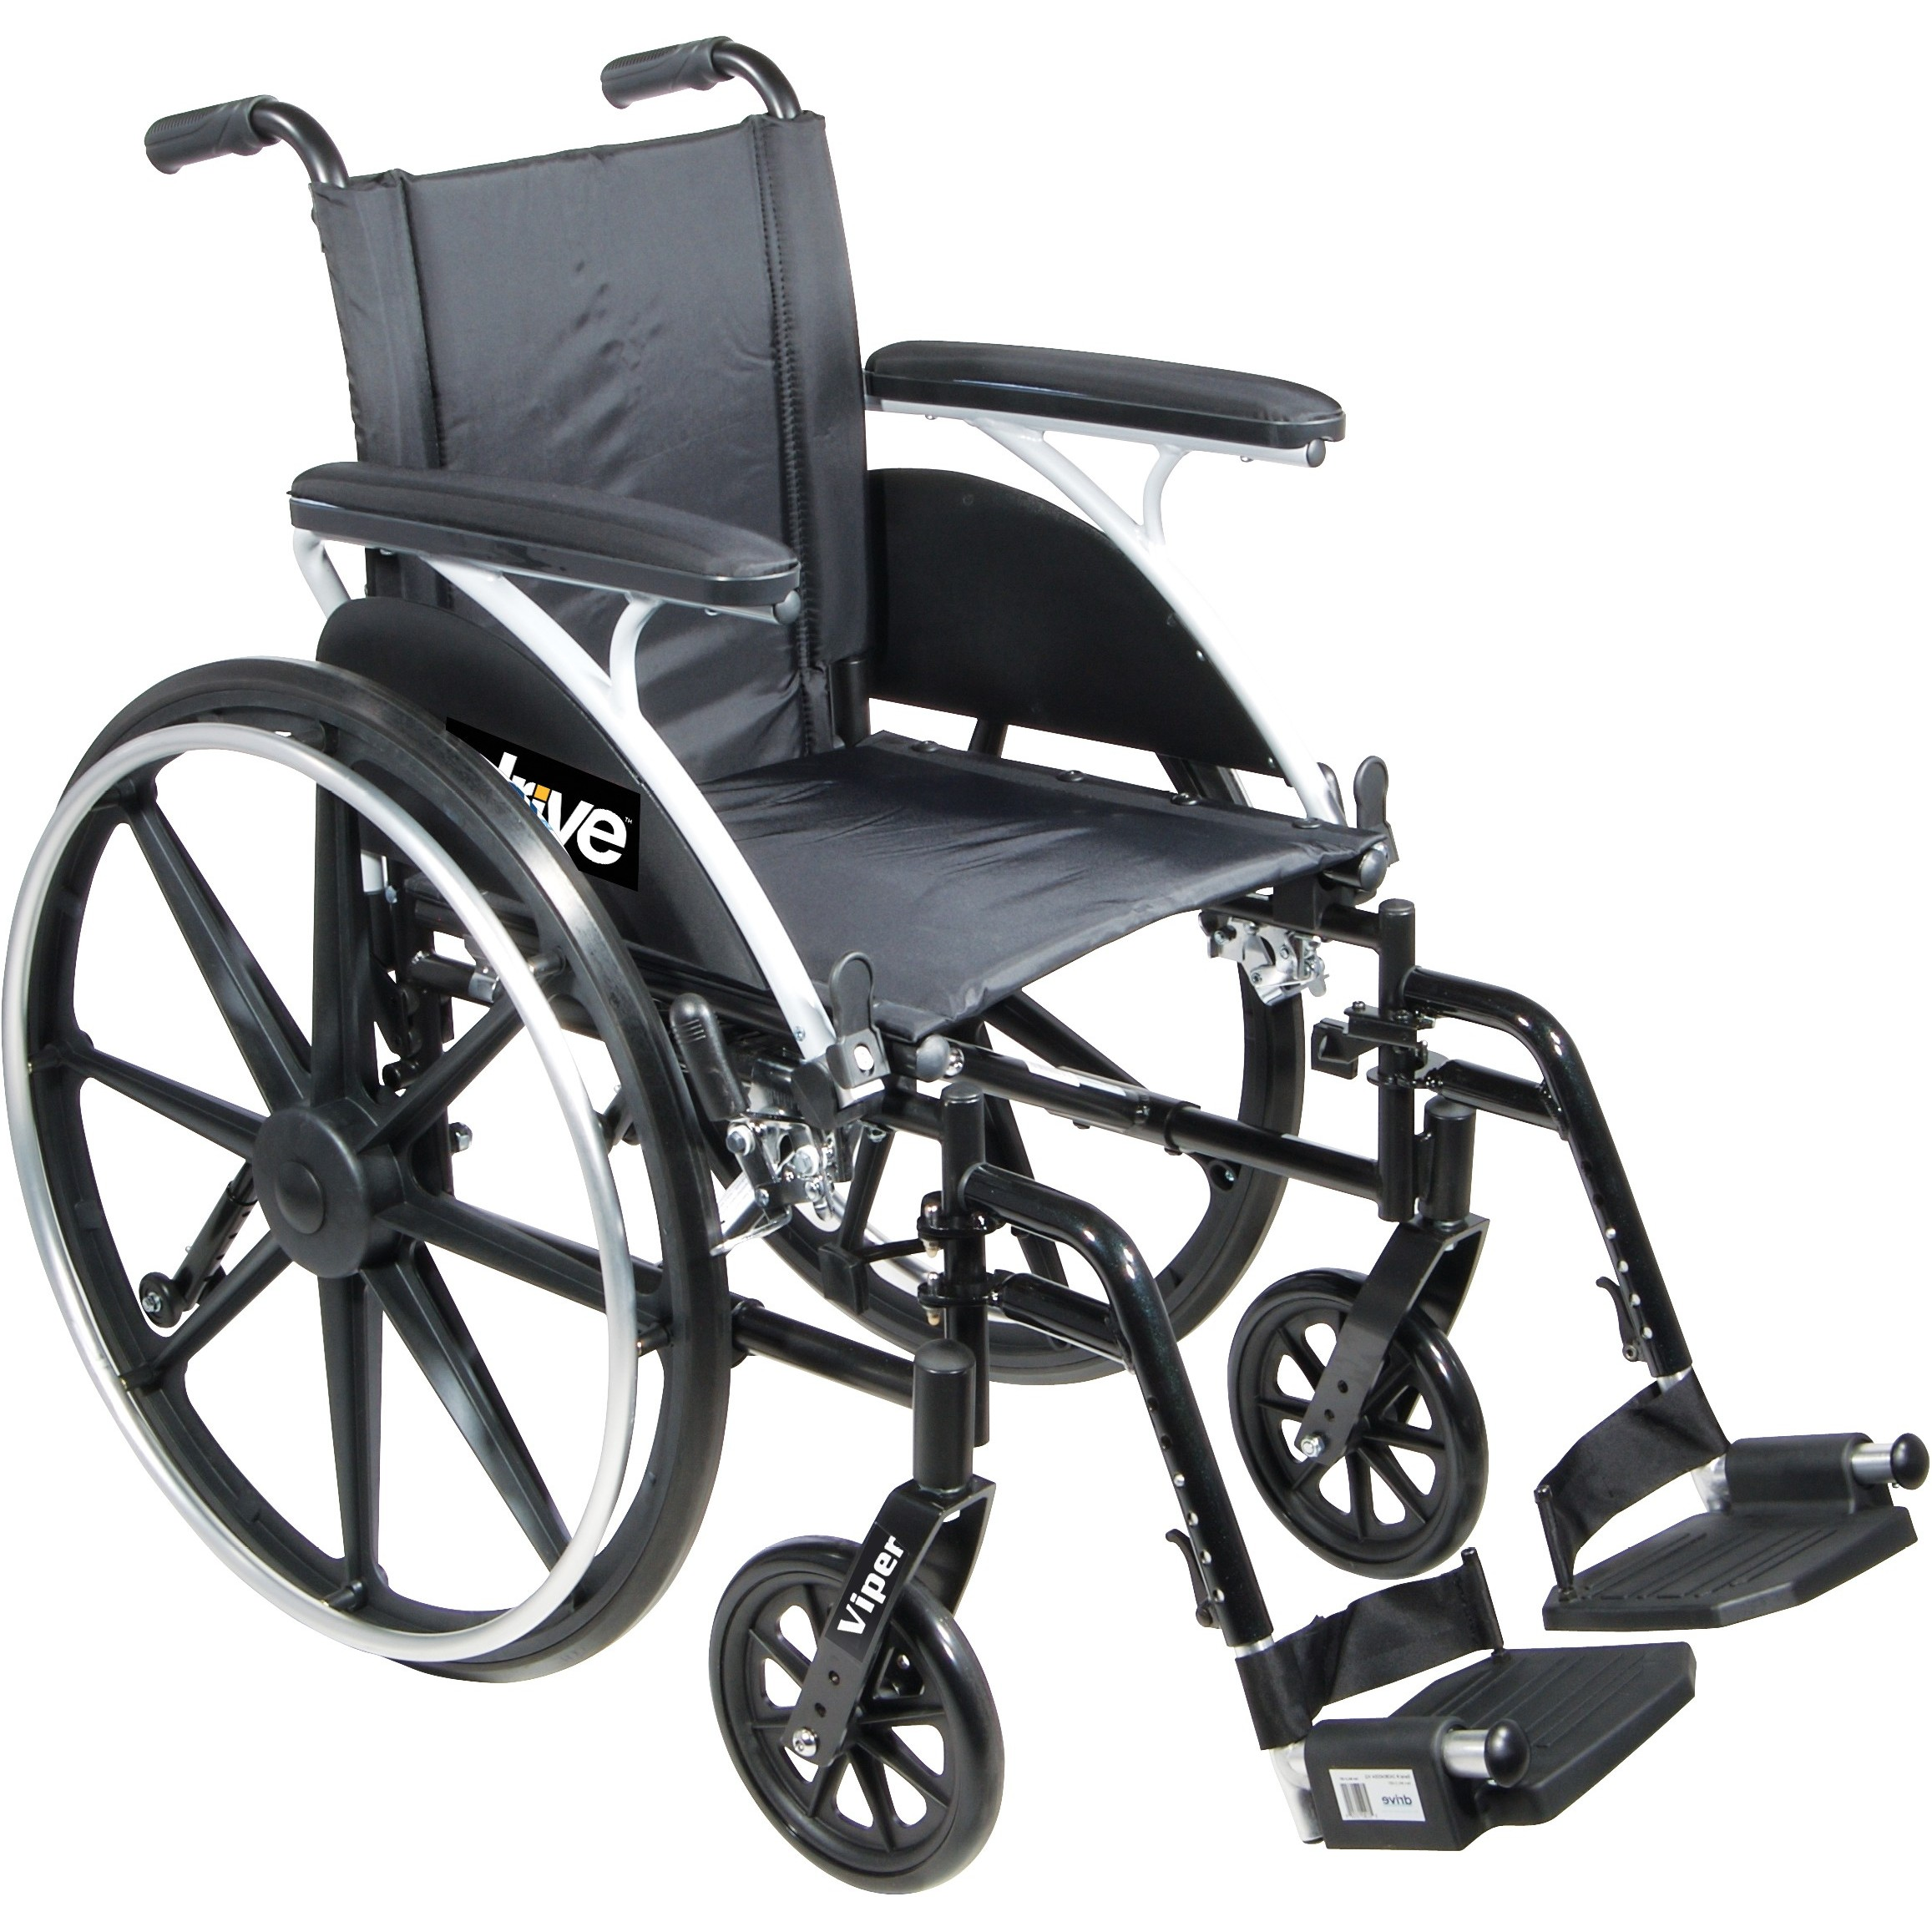 Front view of Drive Viper Wheelchair with Flip Back Removable Arms